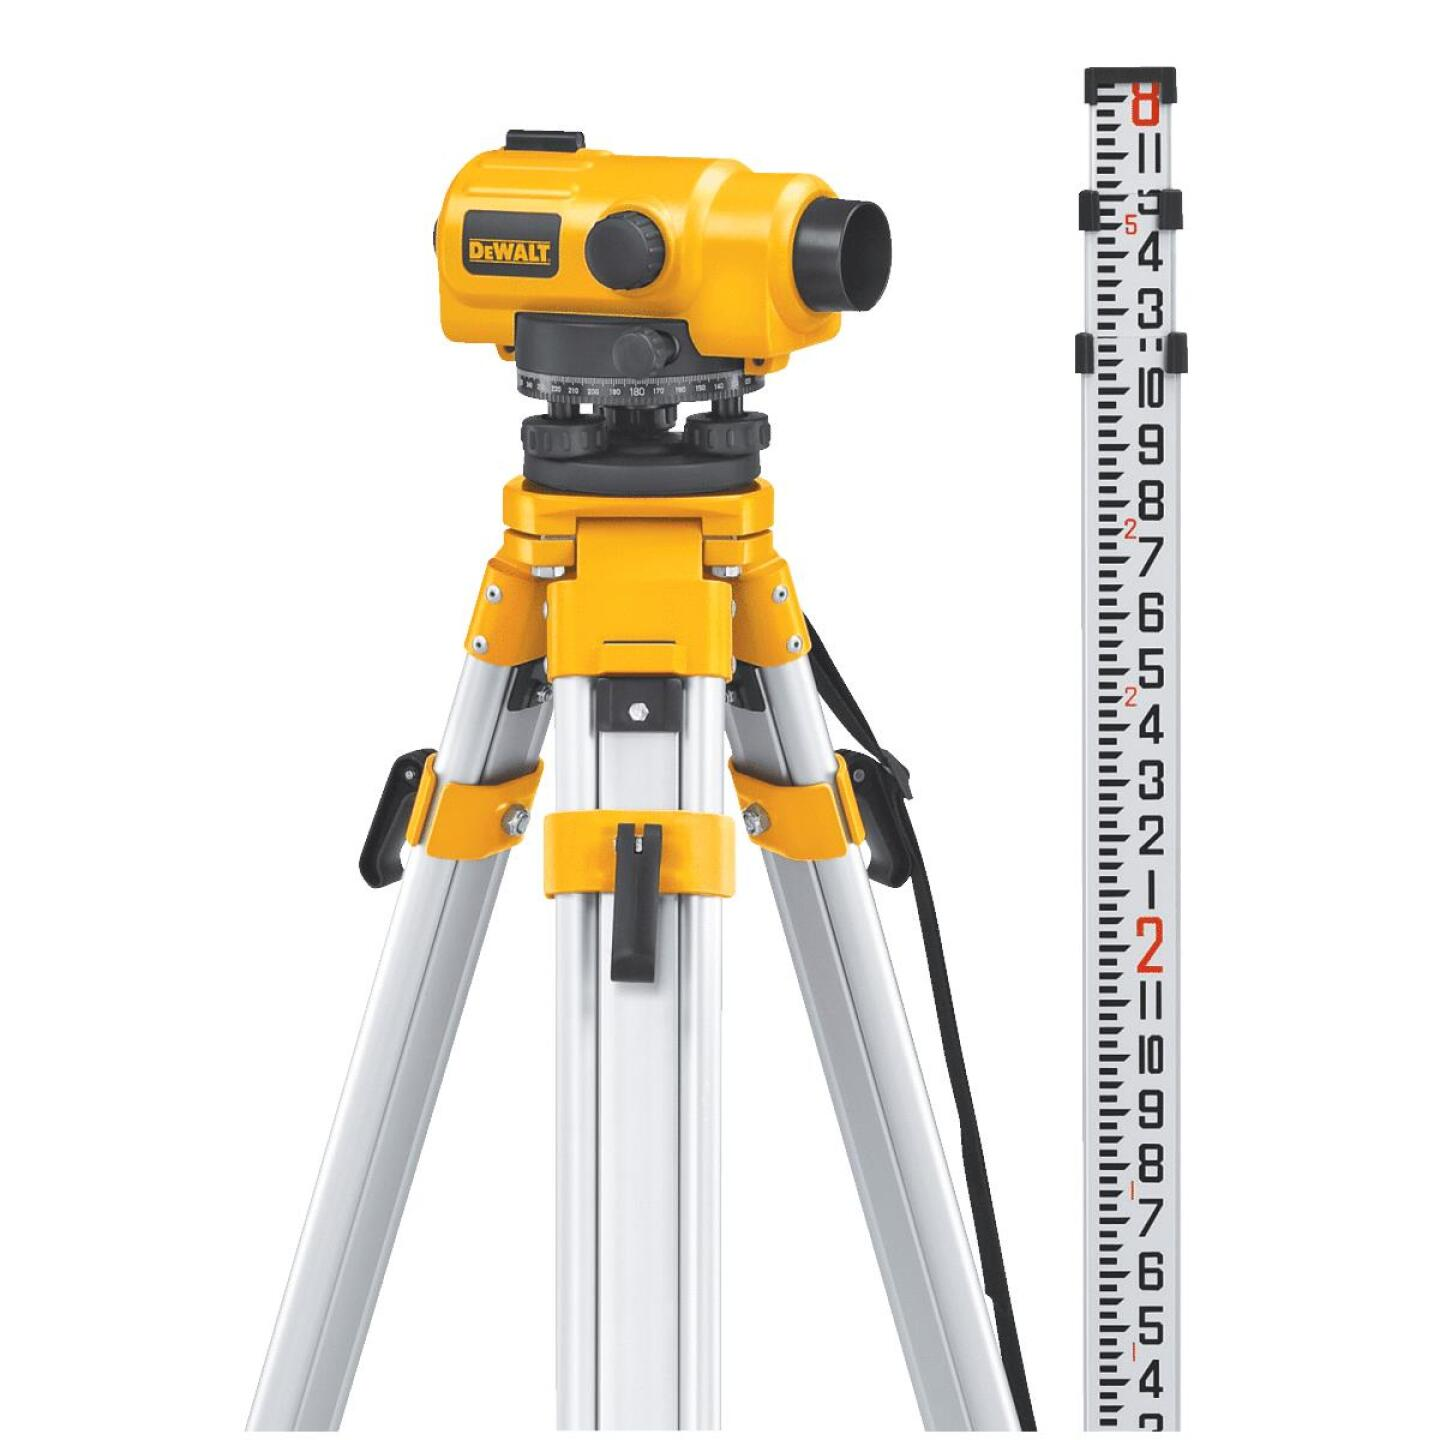 Dewalt 26x Magnifying Auto Sight Level Image 2